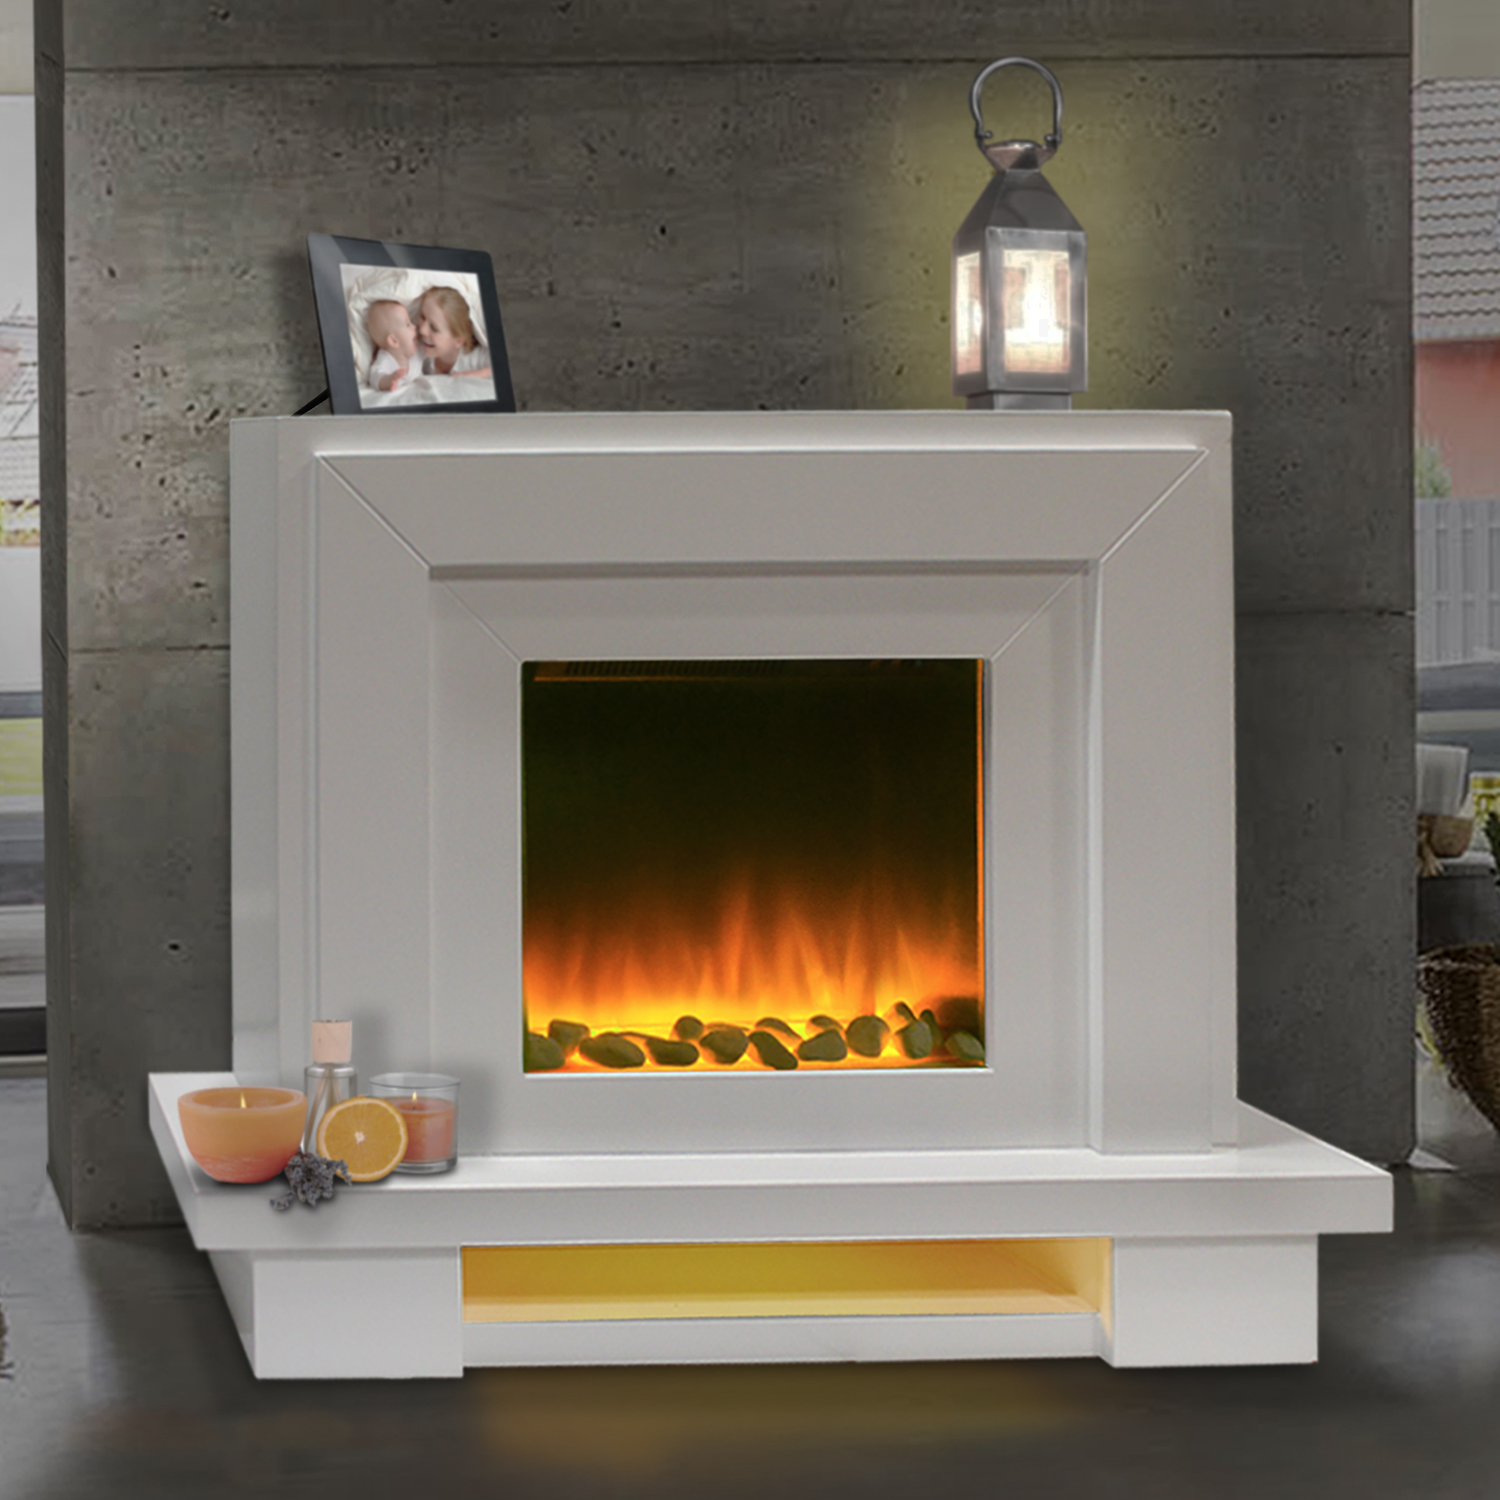 Contemporary Free Standing Electric Fires: Electric Fire Fireplace Free Standing Modern Surround